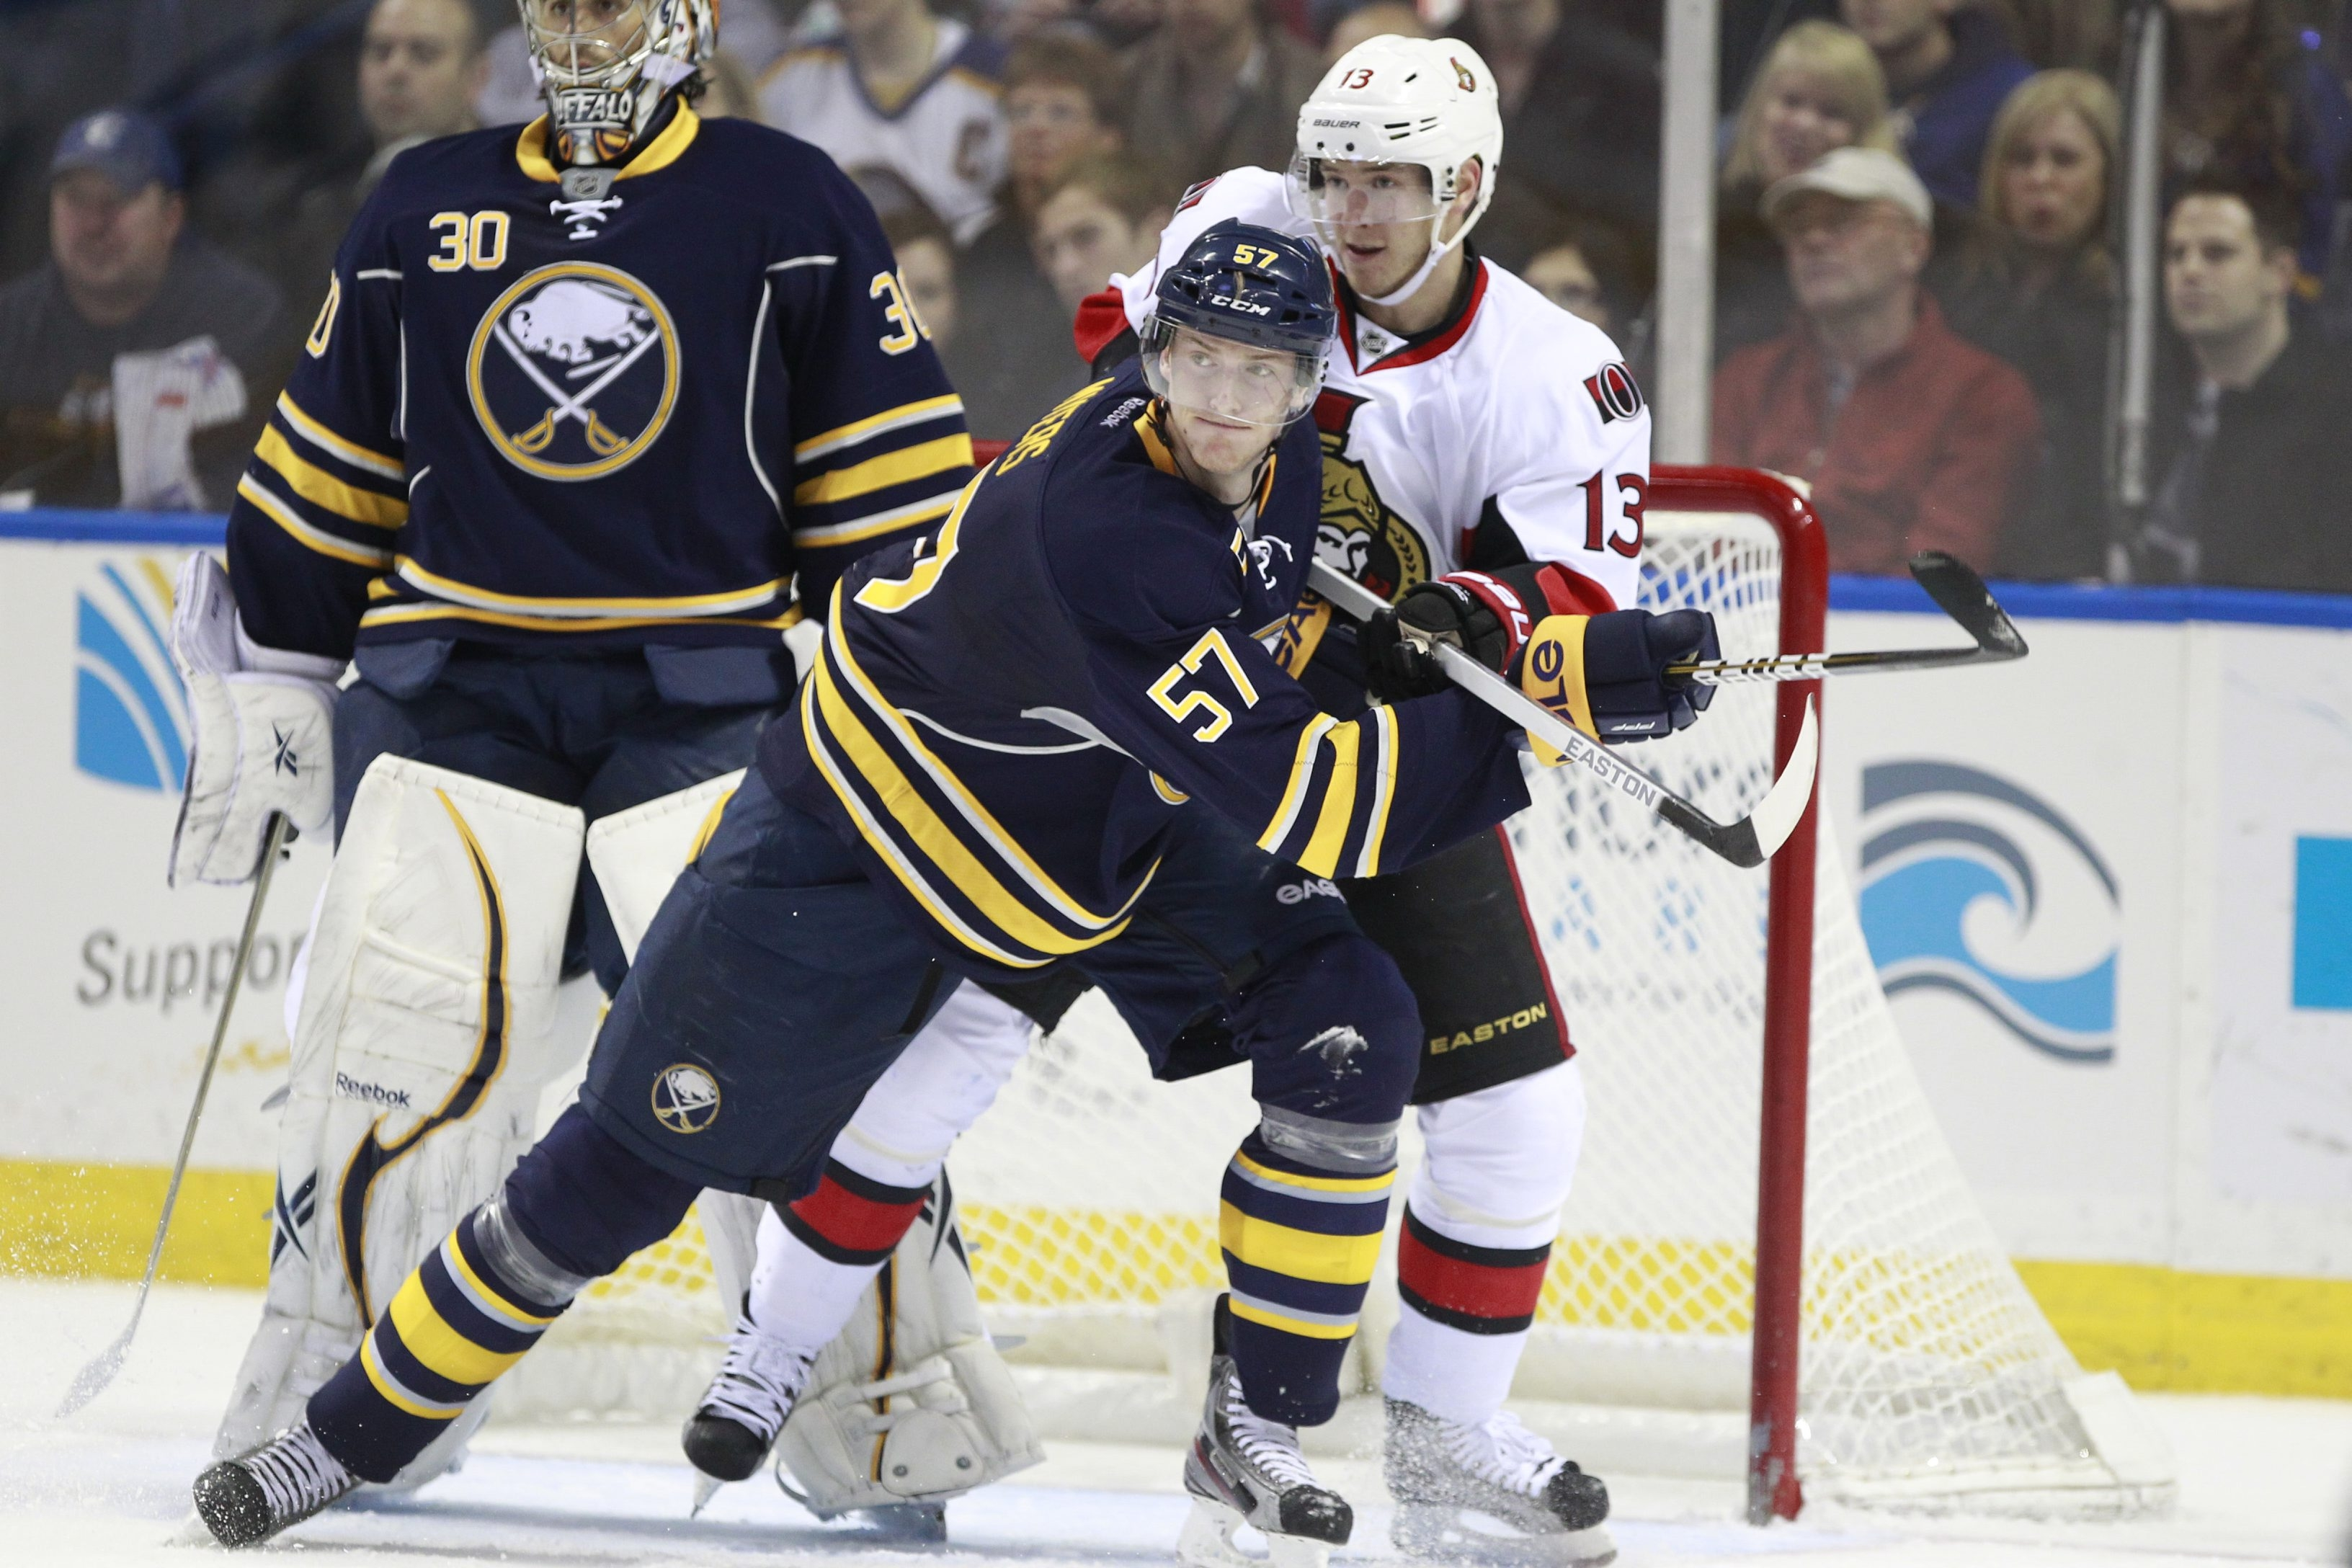 The Sabres' Tyler Myers had only eight points this season, his worst statistically.